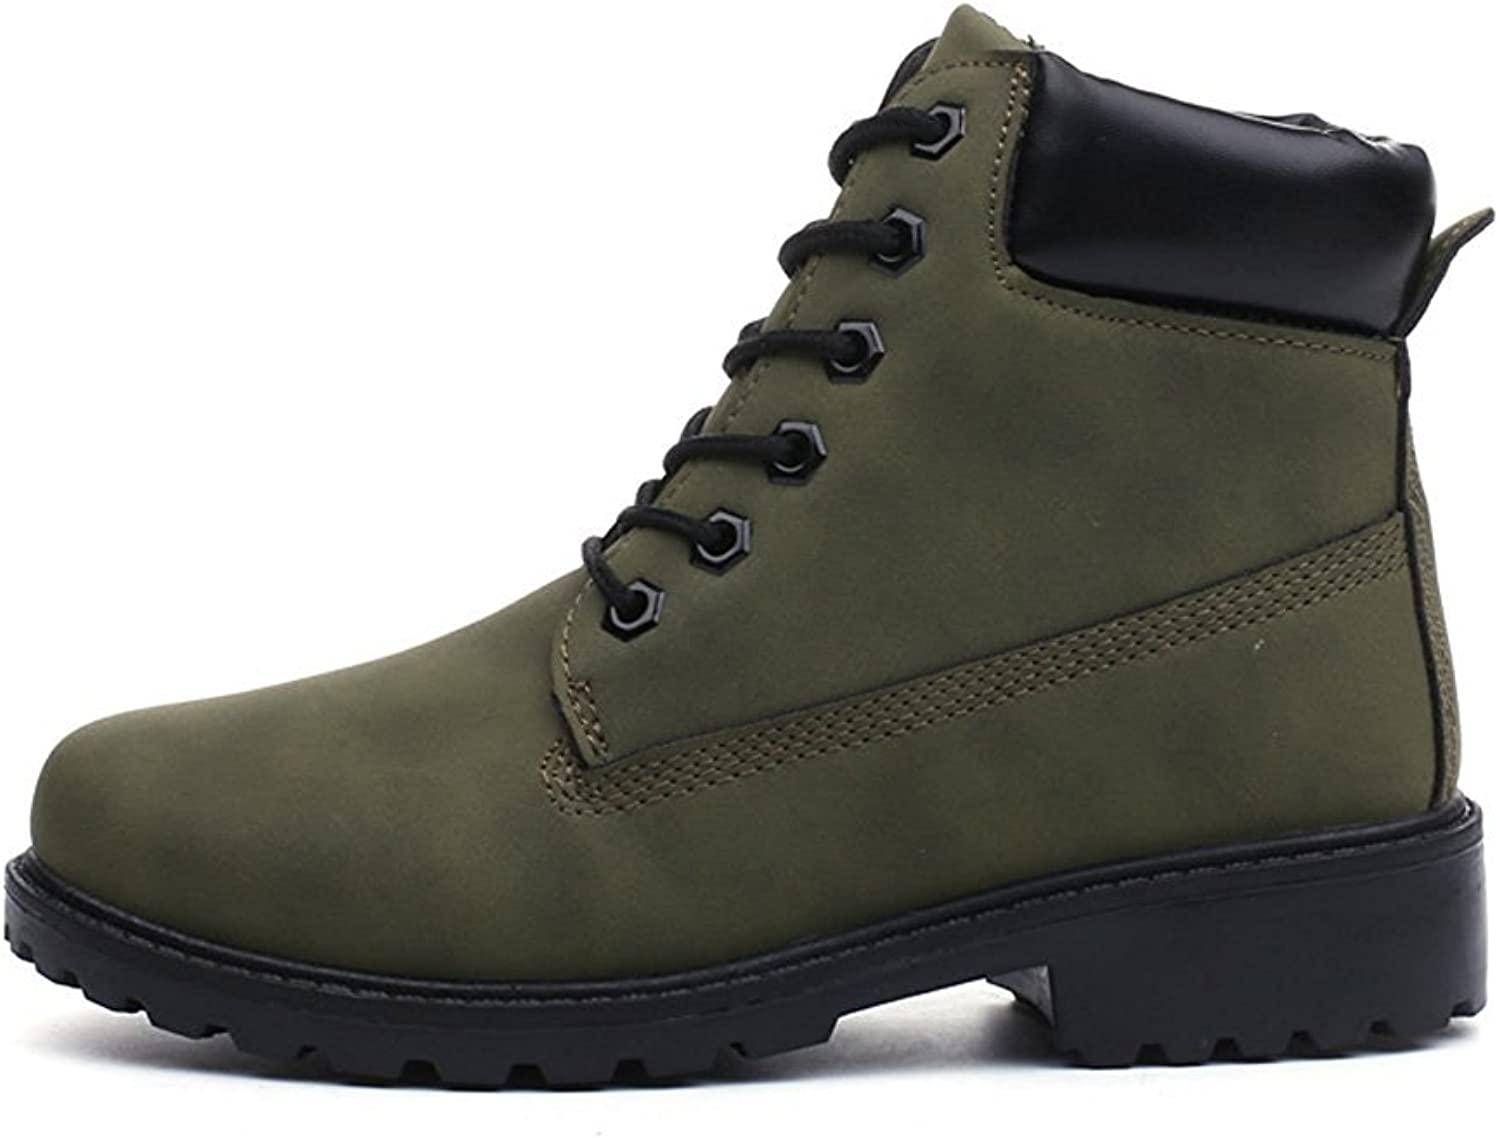 Sothingoodly Nice Unisex Short Combat Chelsea Retro Lace Up Martin Ankle High Tops Boots Work Hiking Trail Biker shoes